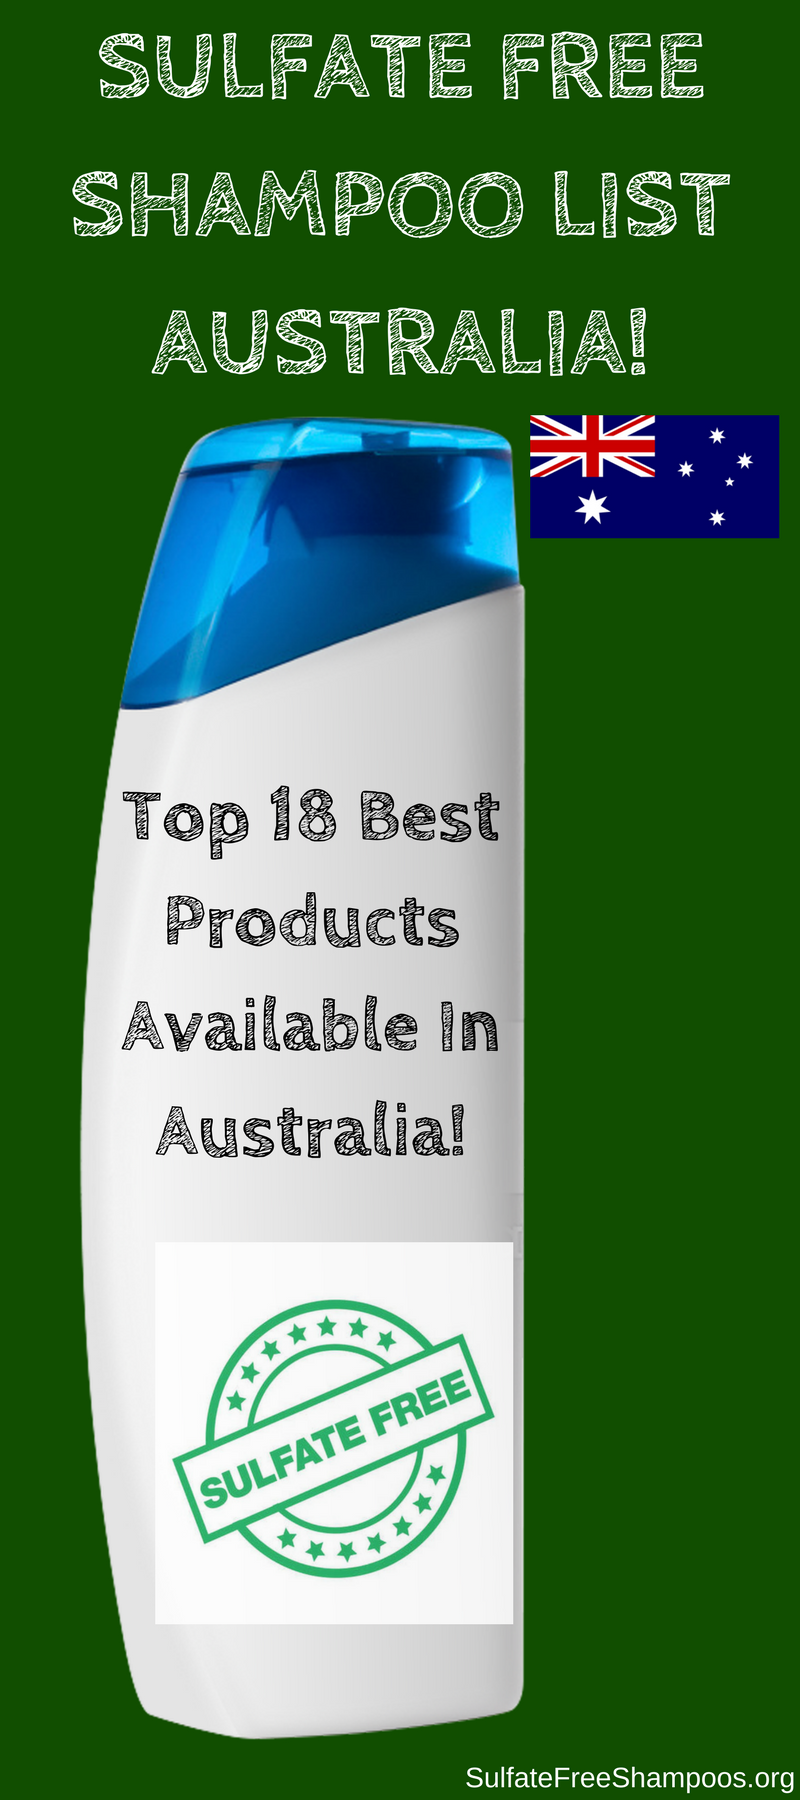 sulfate free shampoo list australia - top 18 best products in 2018